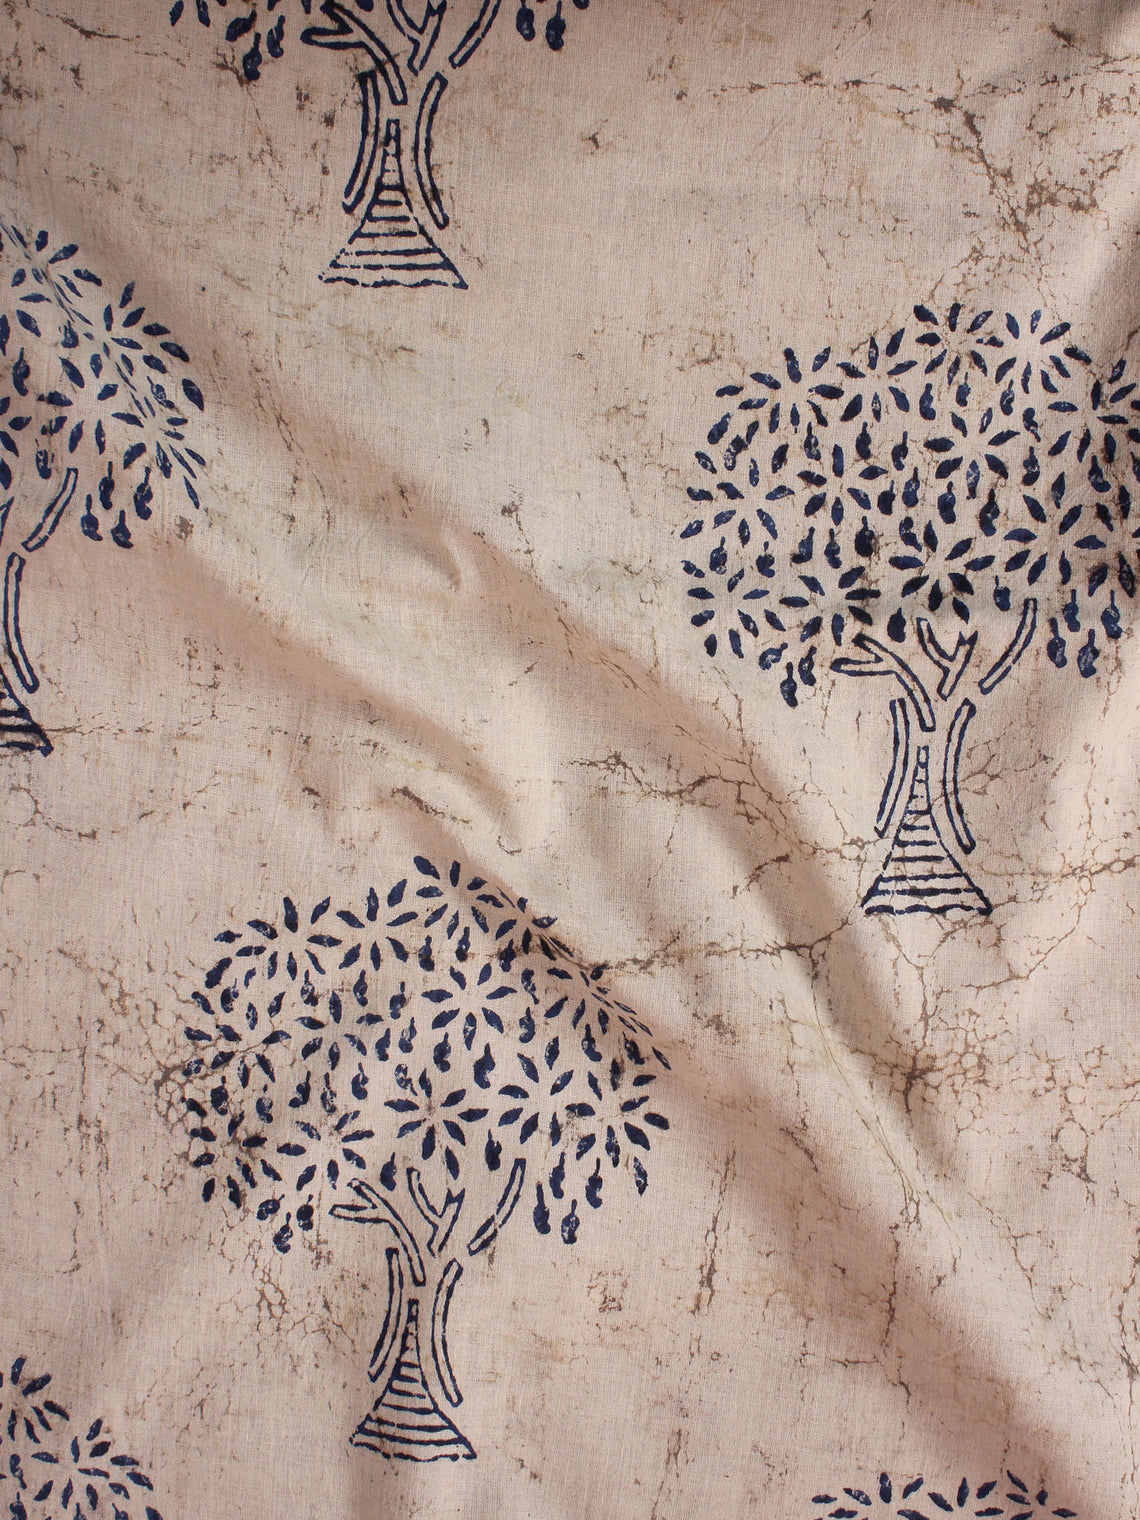 Beige Indigo Natural Dyed Hand Block Printed Cotton Fabric Per Meter - F0916308